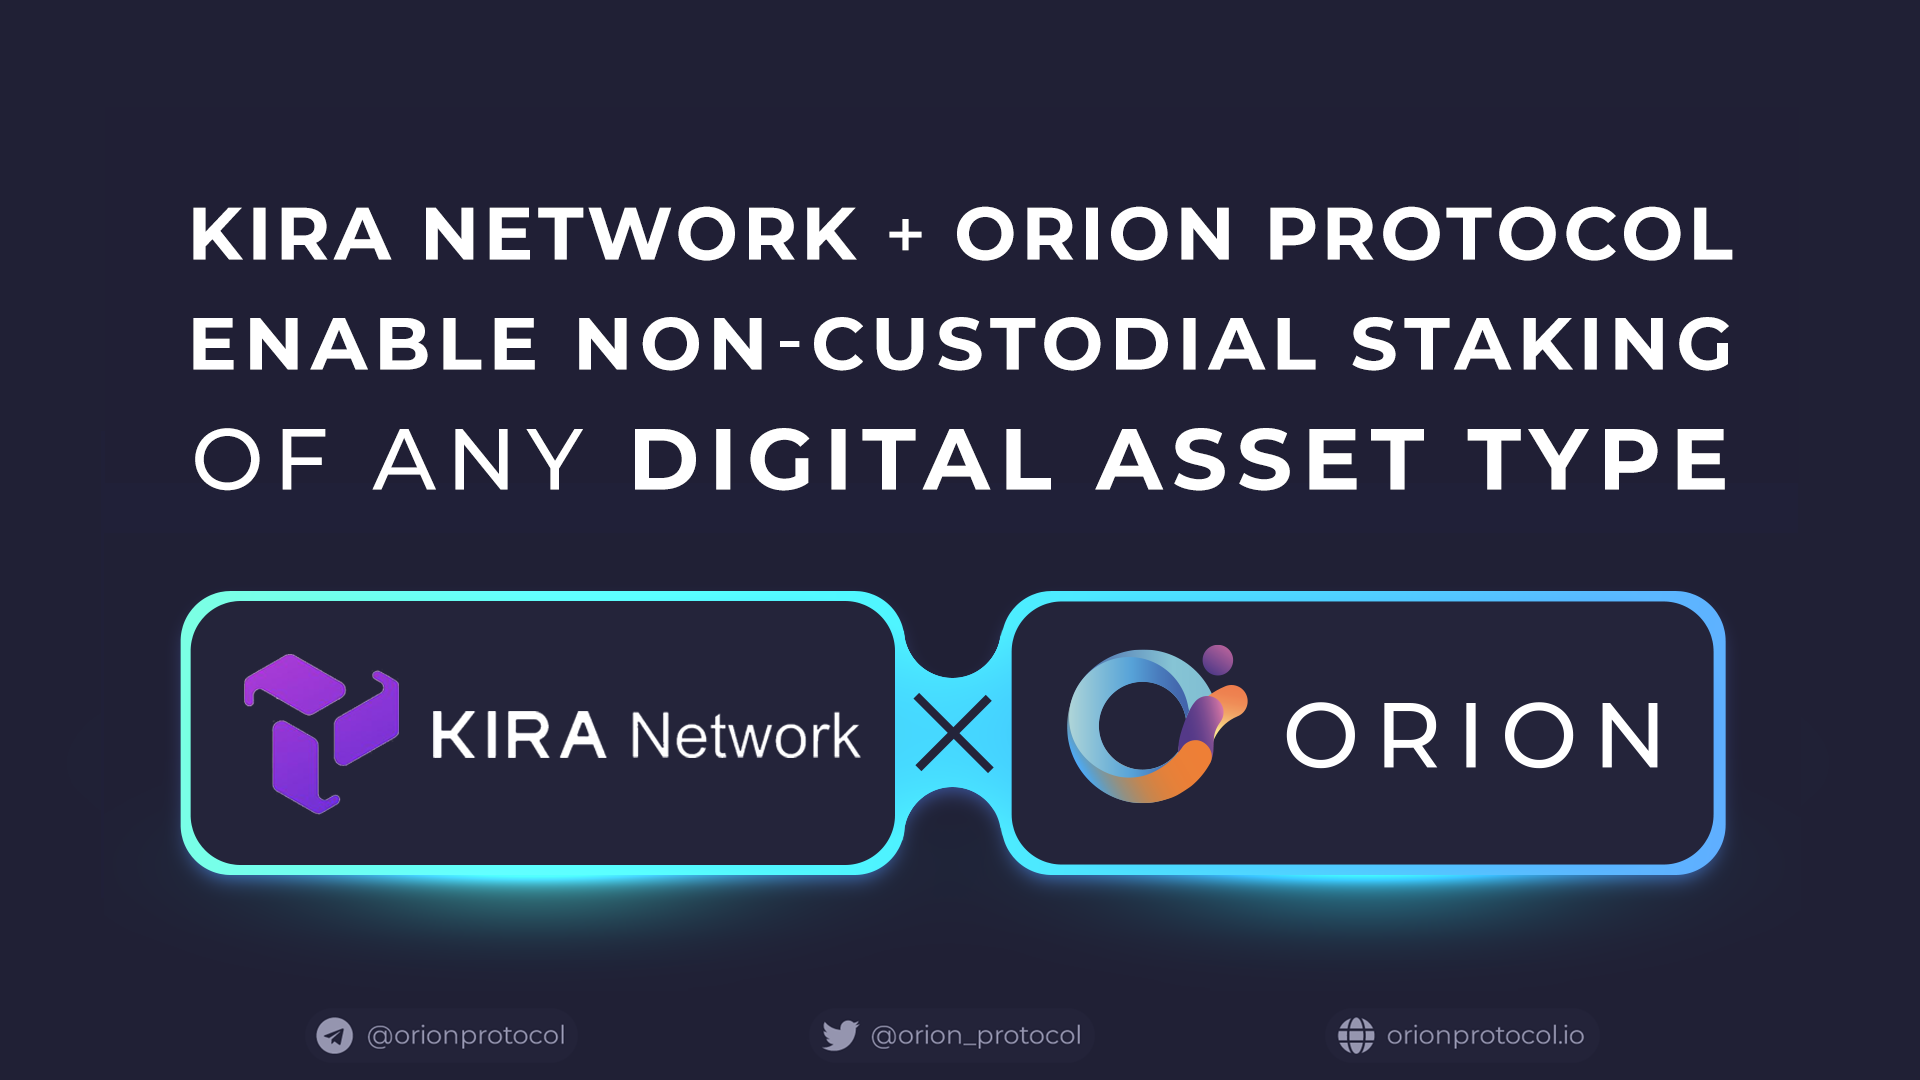 Orion Announces Strategic Integration with Kira Network